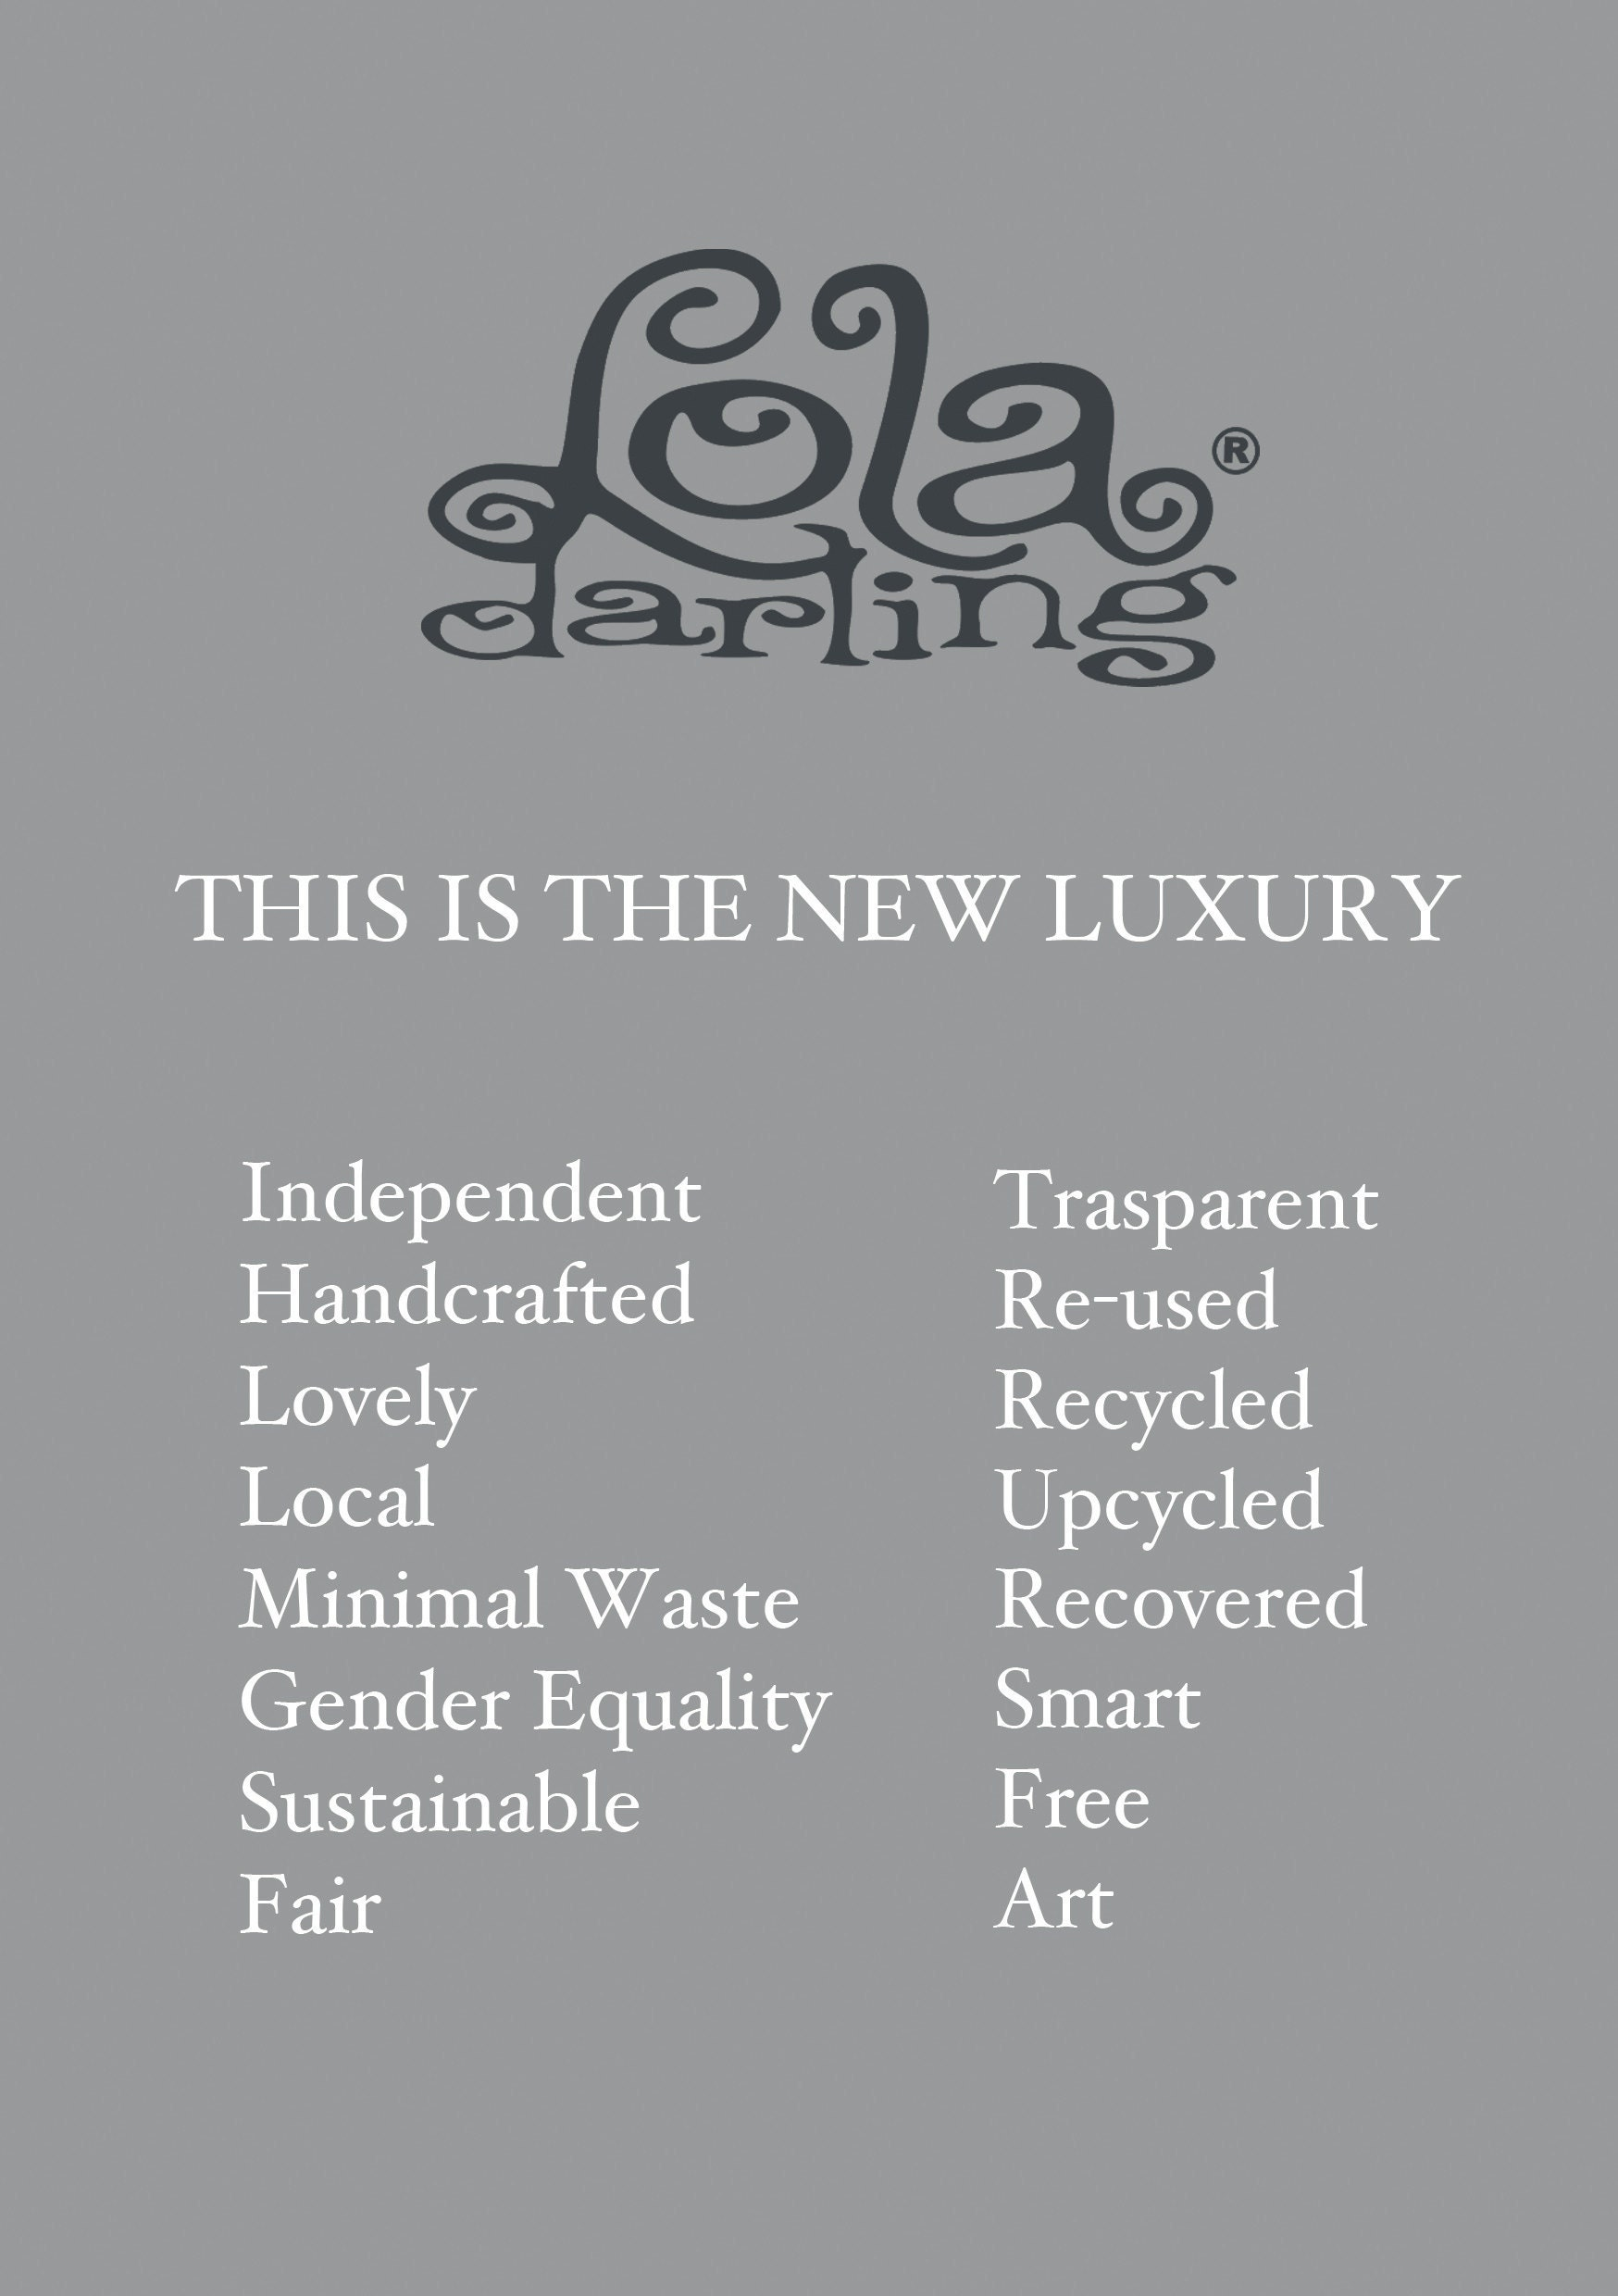 this is the new luxury lola darling